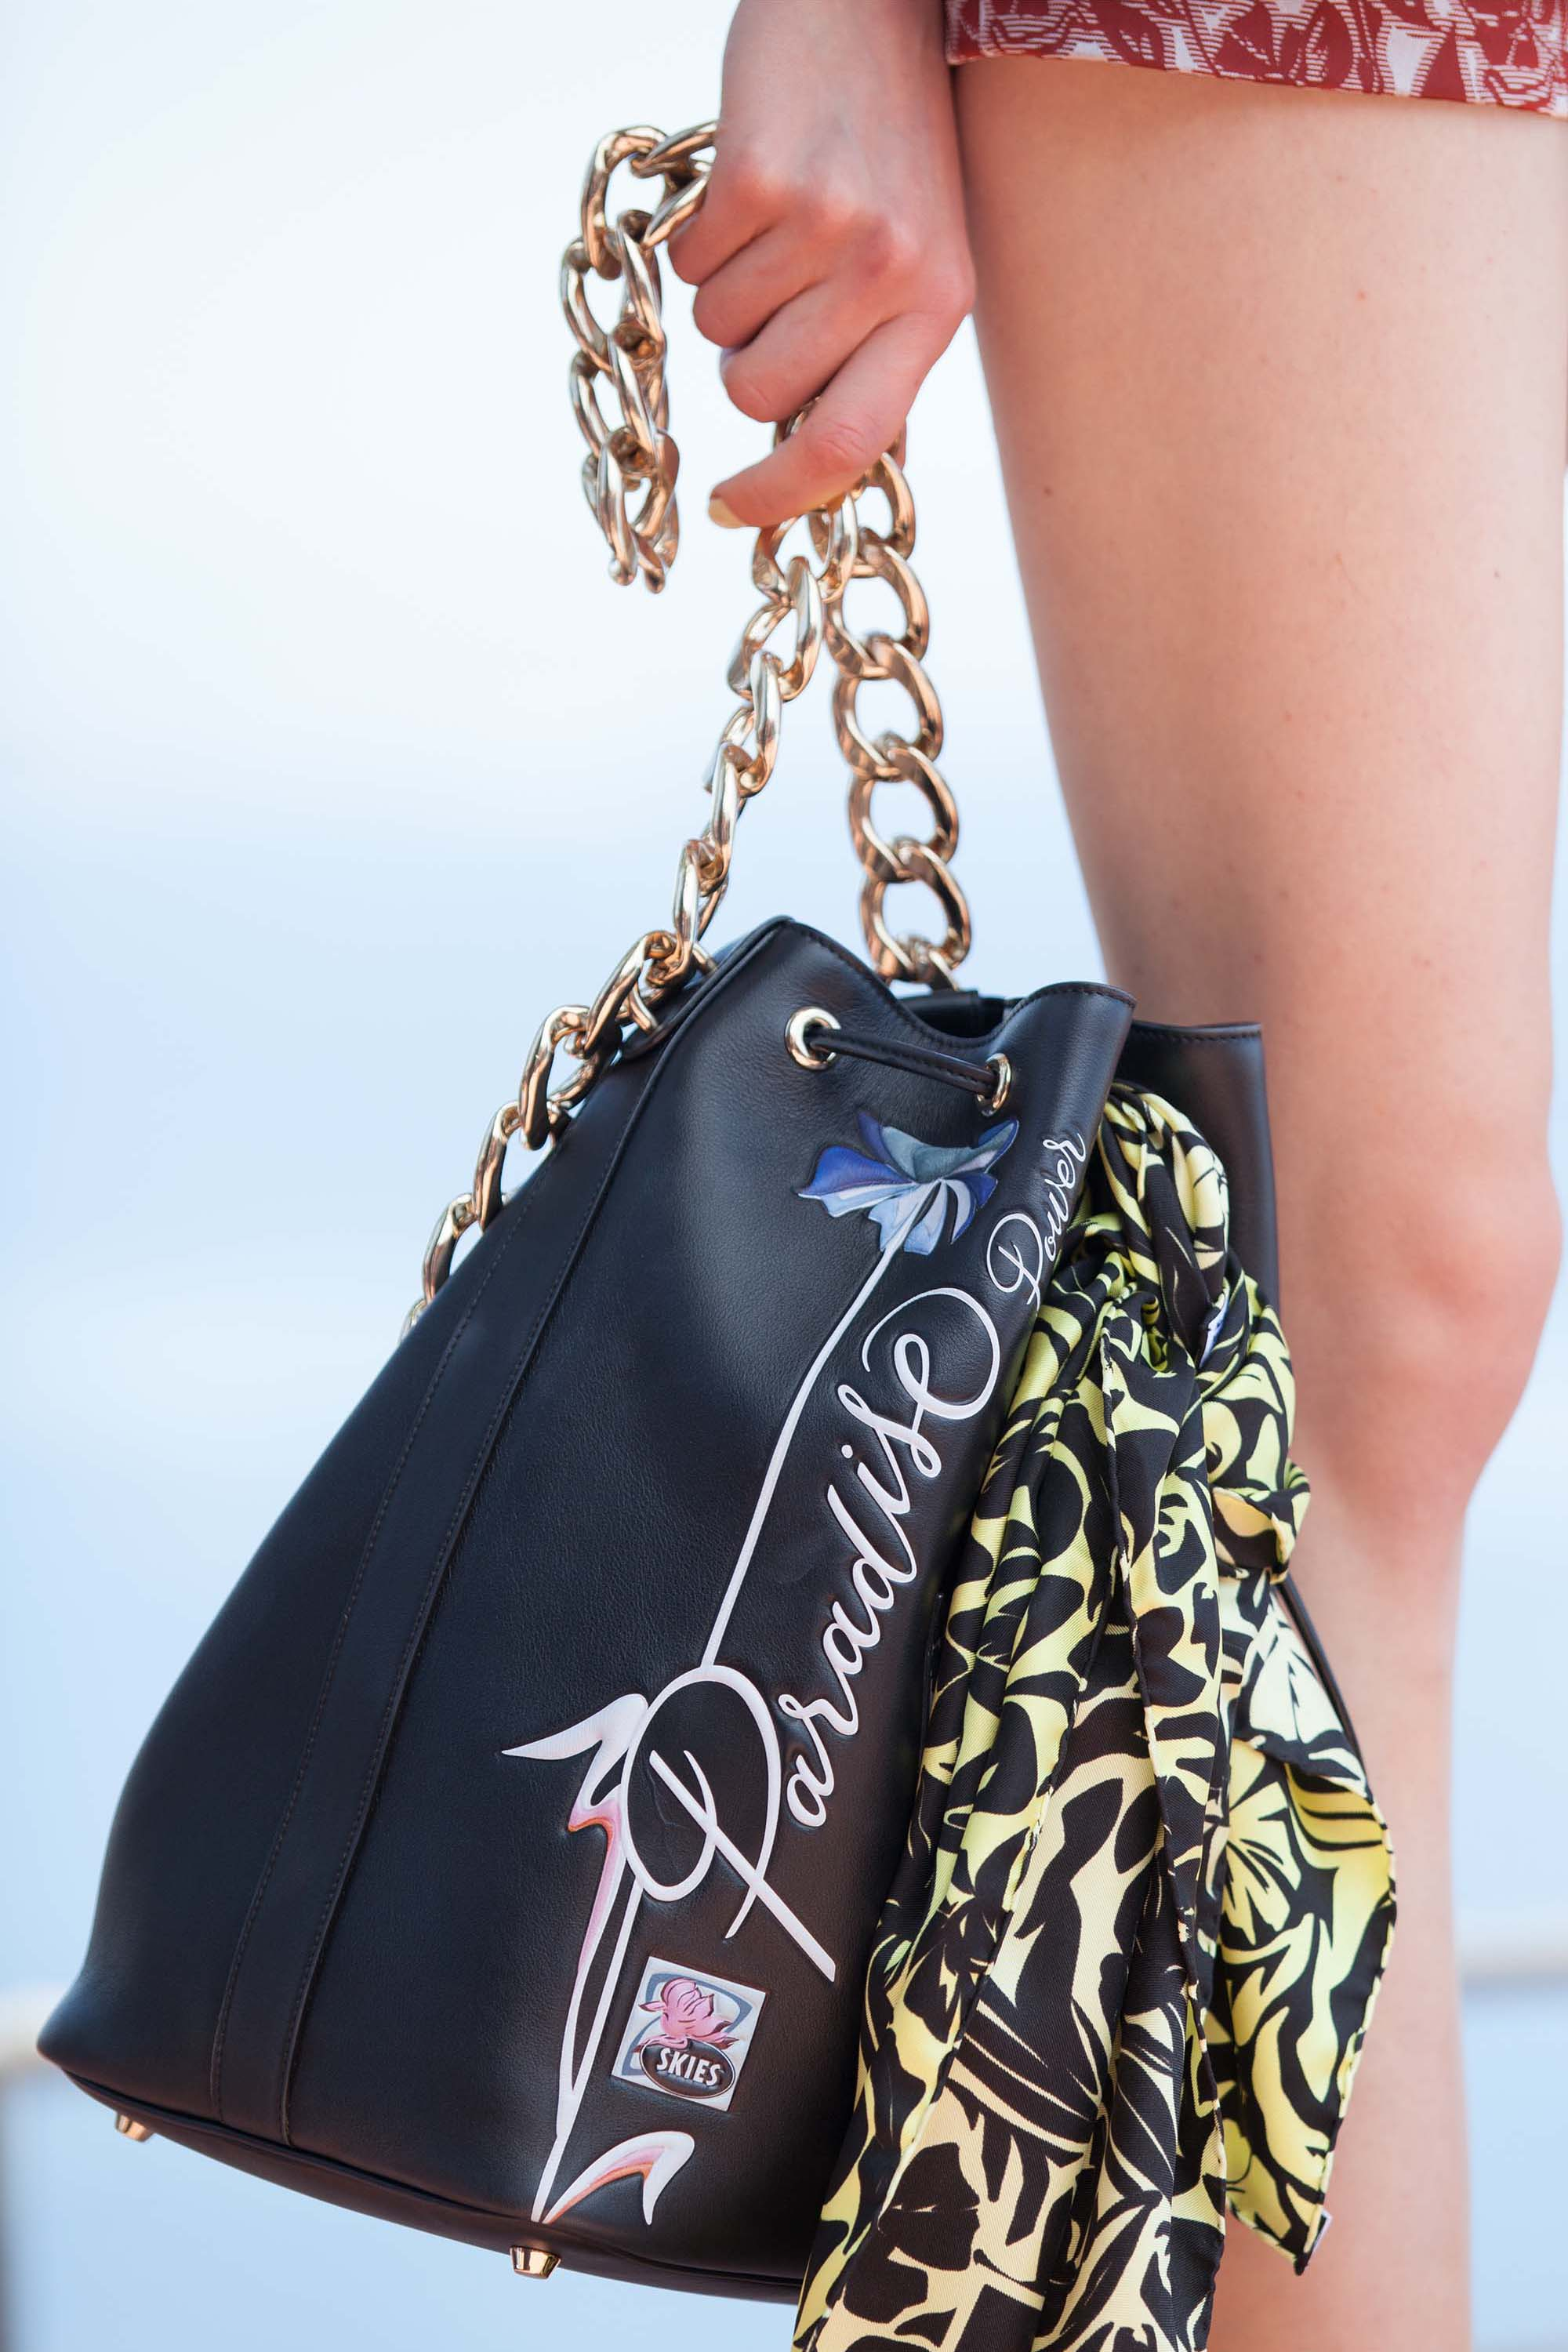 dior cruise 2016 runway bag collection featuring chain